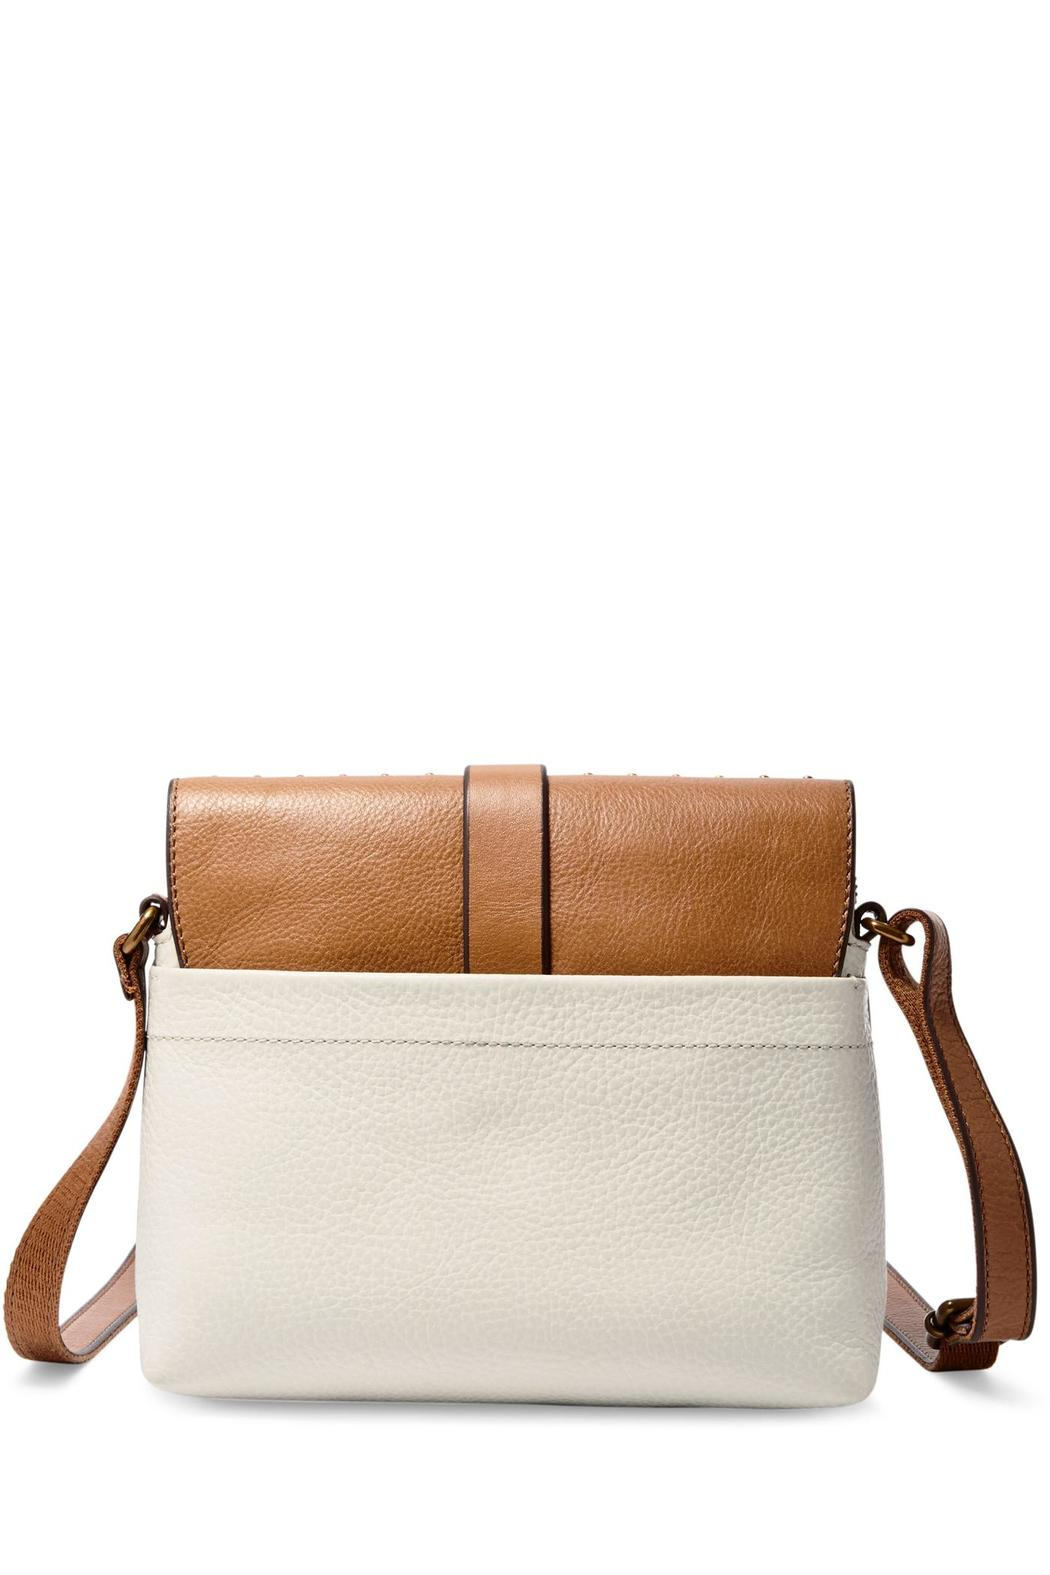 2187fd12a Fossil Kinley Small Crossbody Bag from Omaha by Material Girl ...